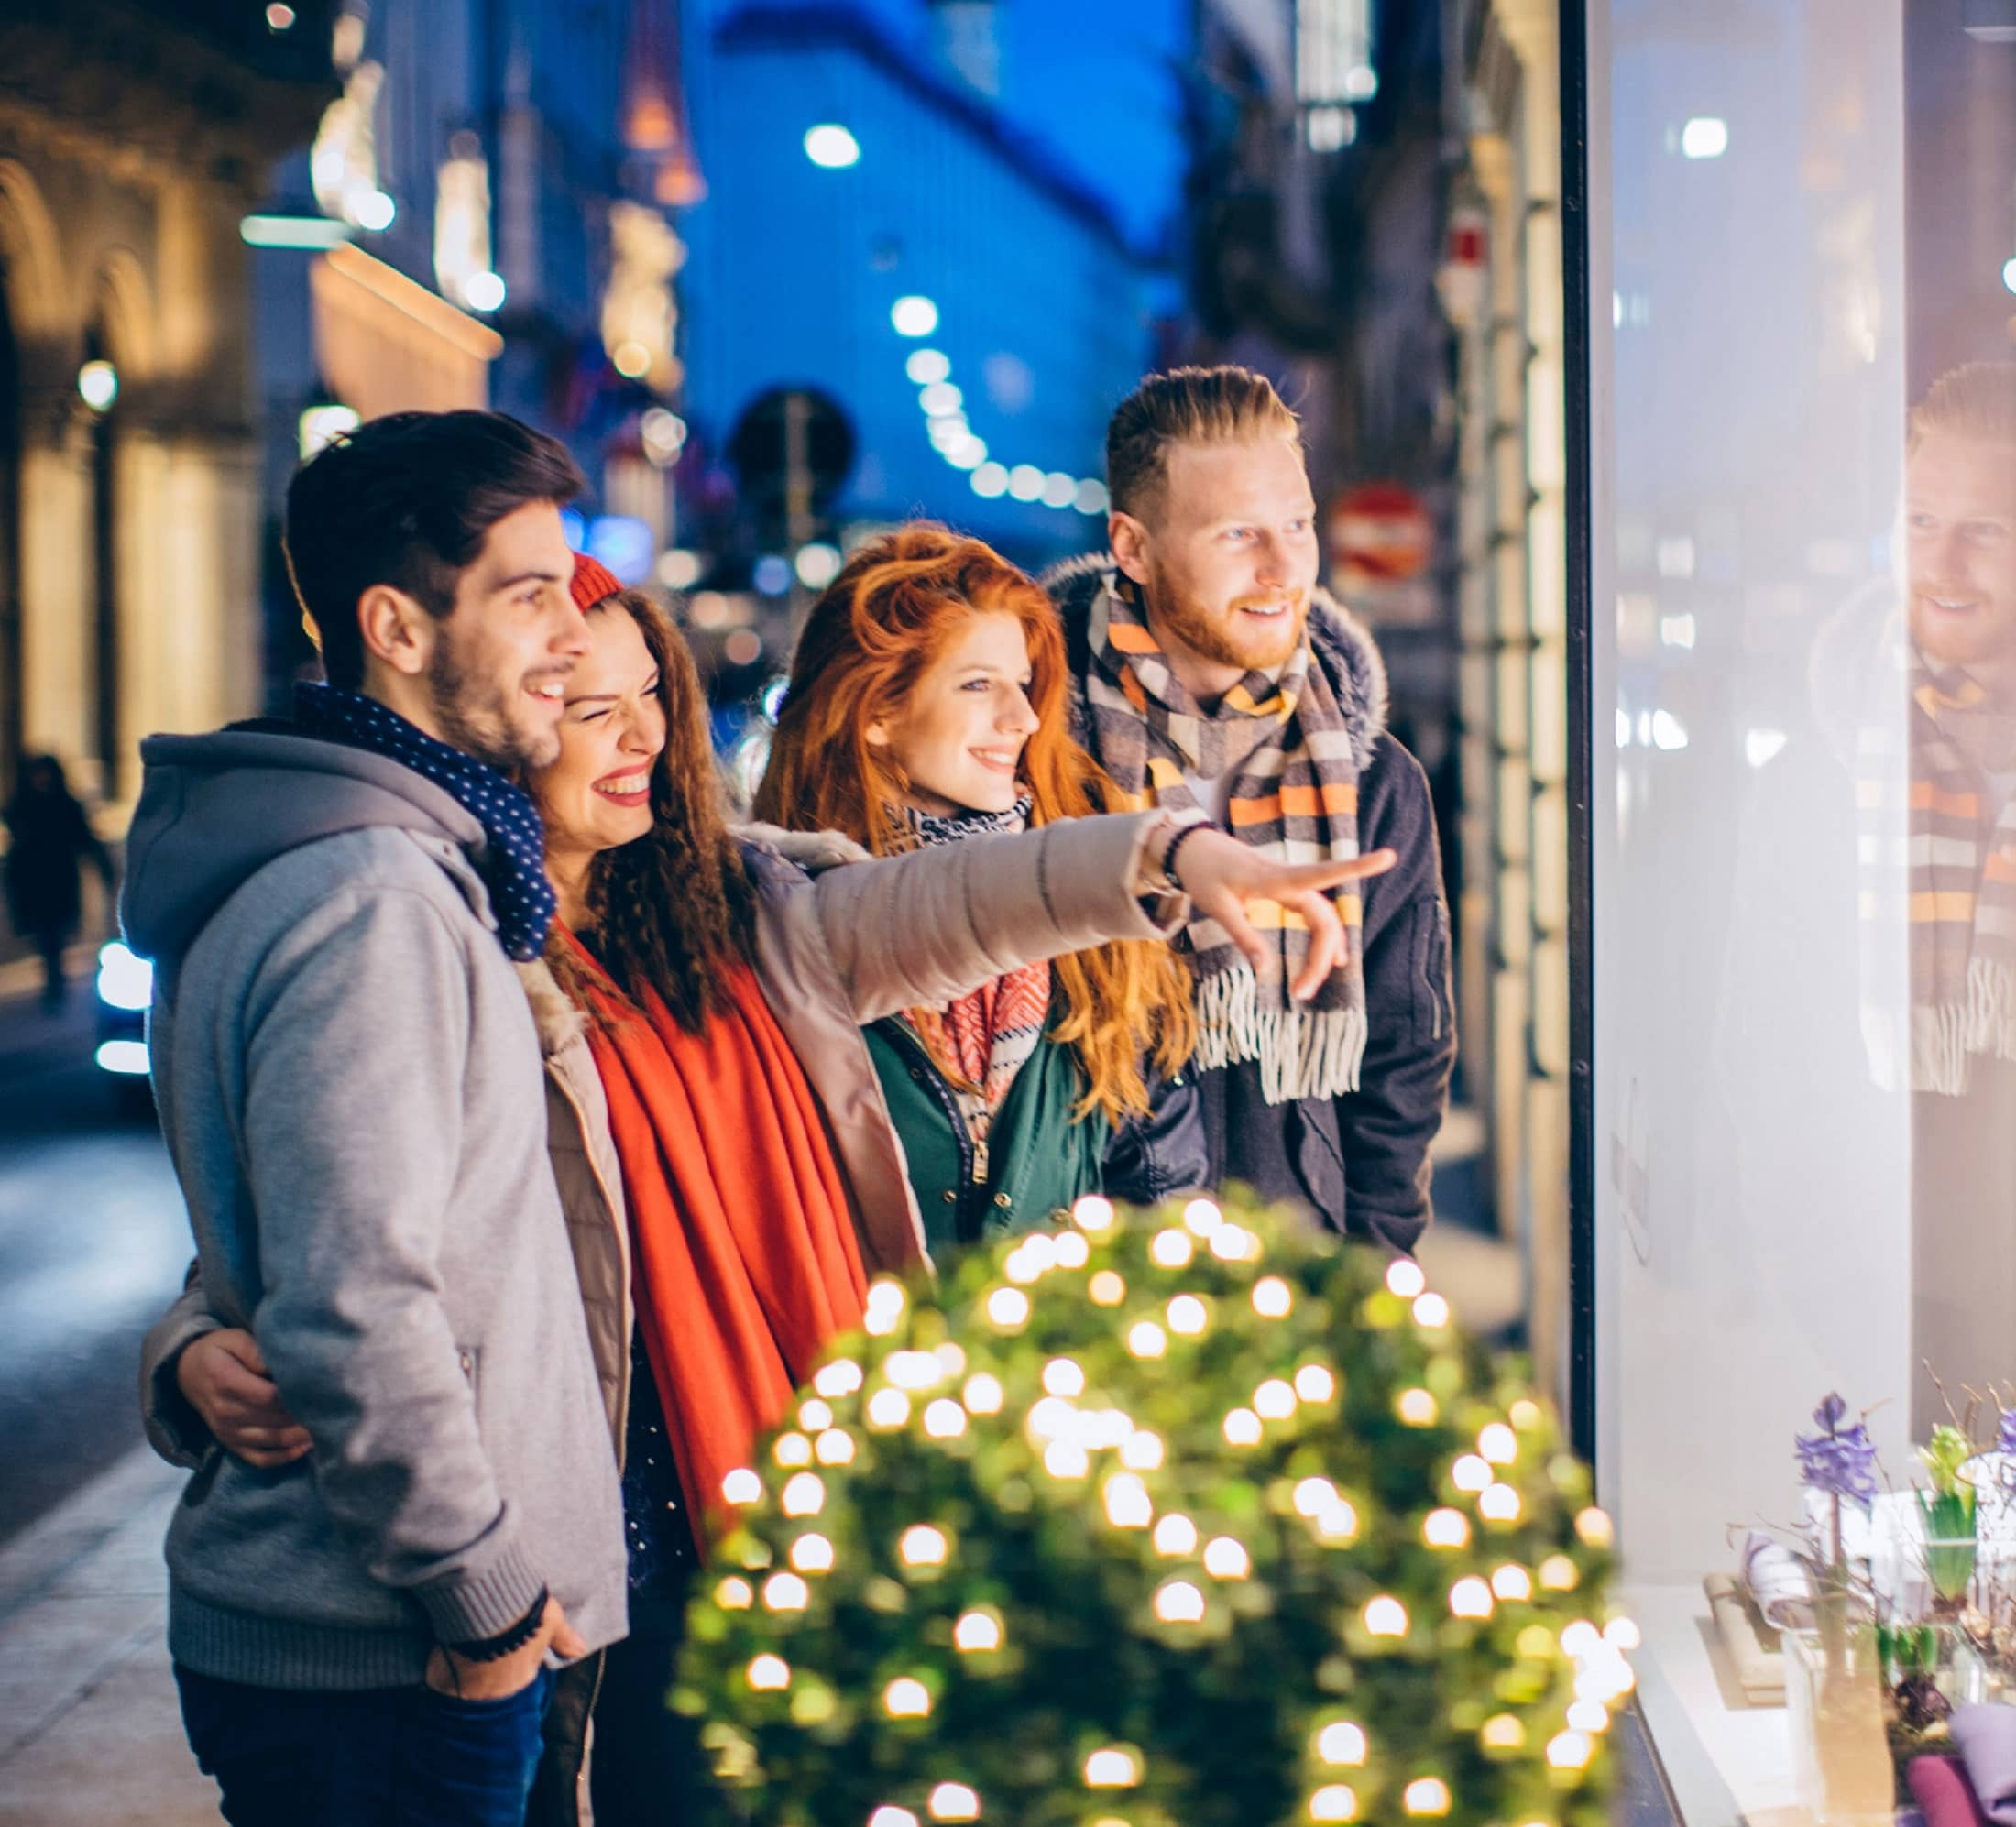 Providing A Unique Experience Is Retailers' Holiday Strategy